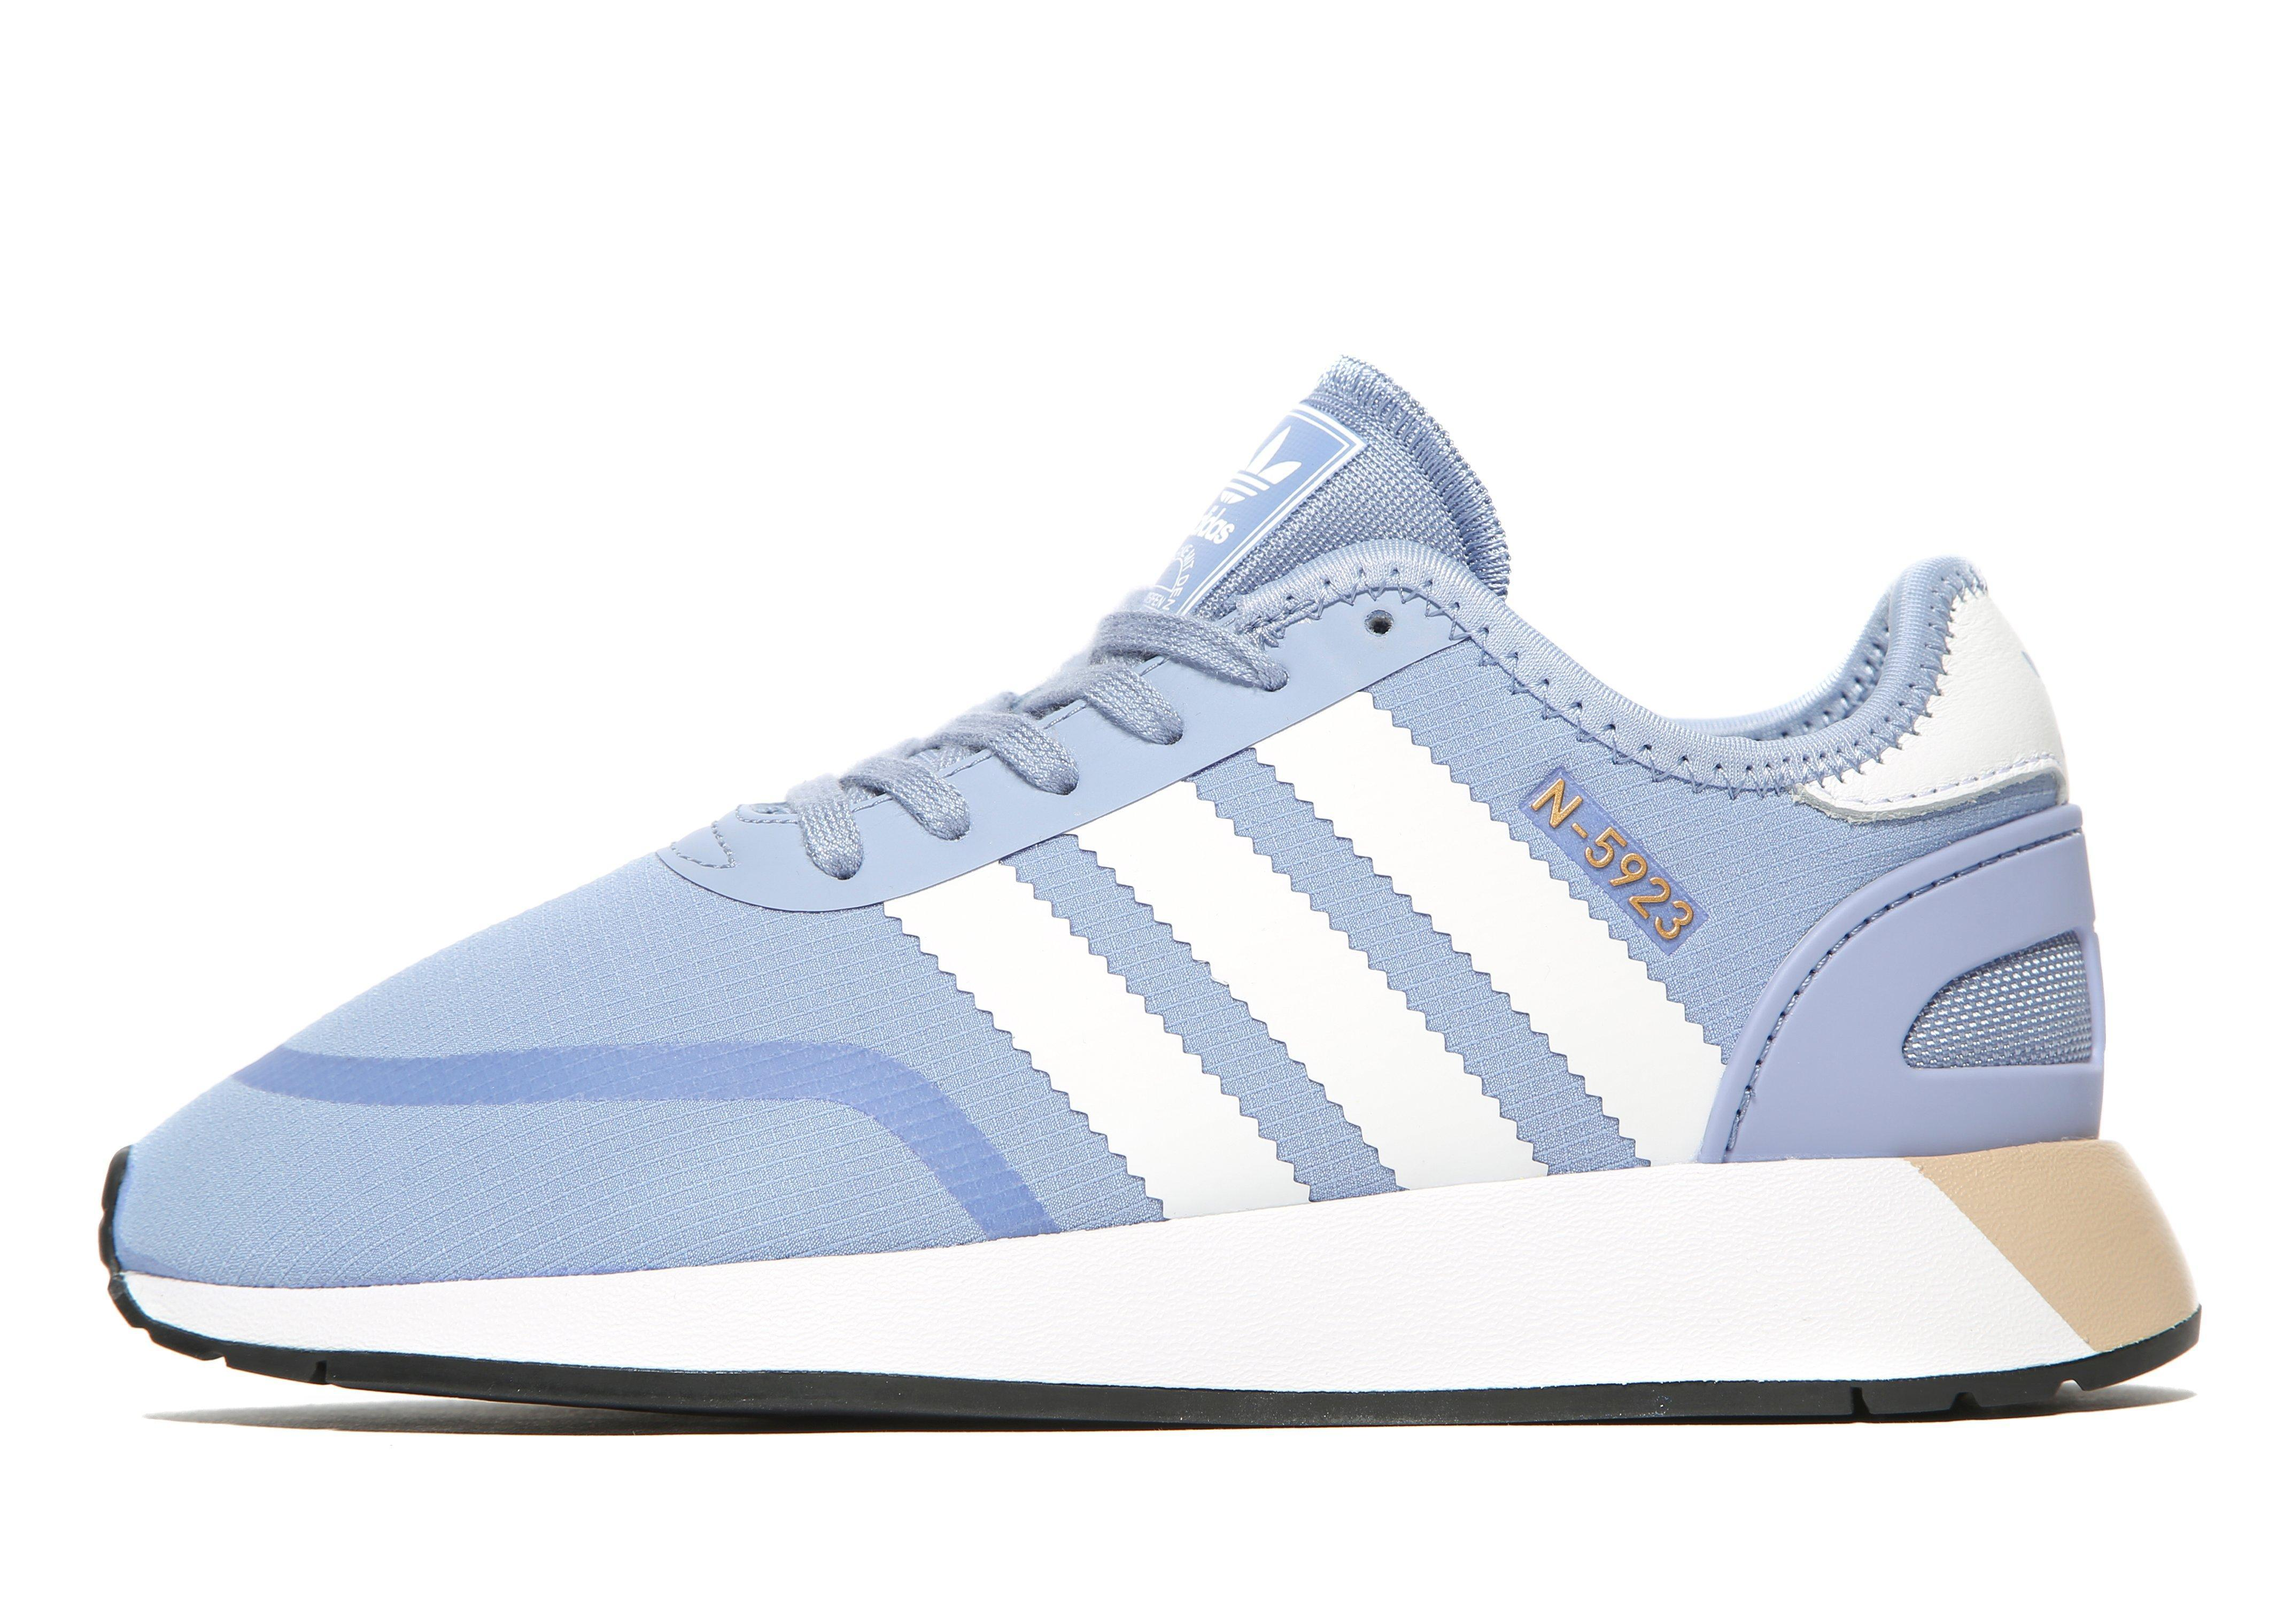 official photos 9274d de3e1 Lyst - adidas Originals N-5923 in Blue for Men